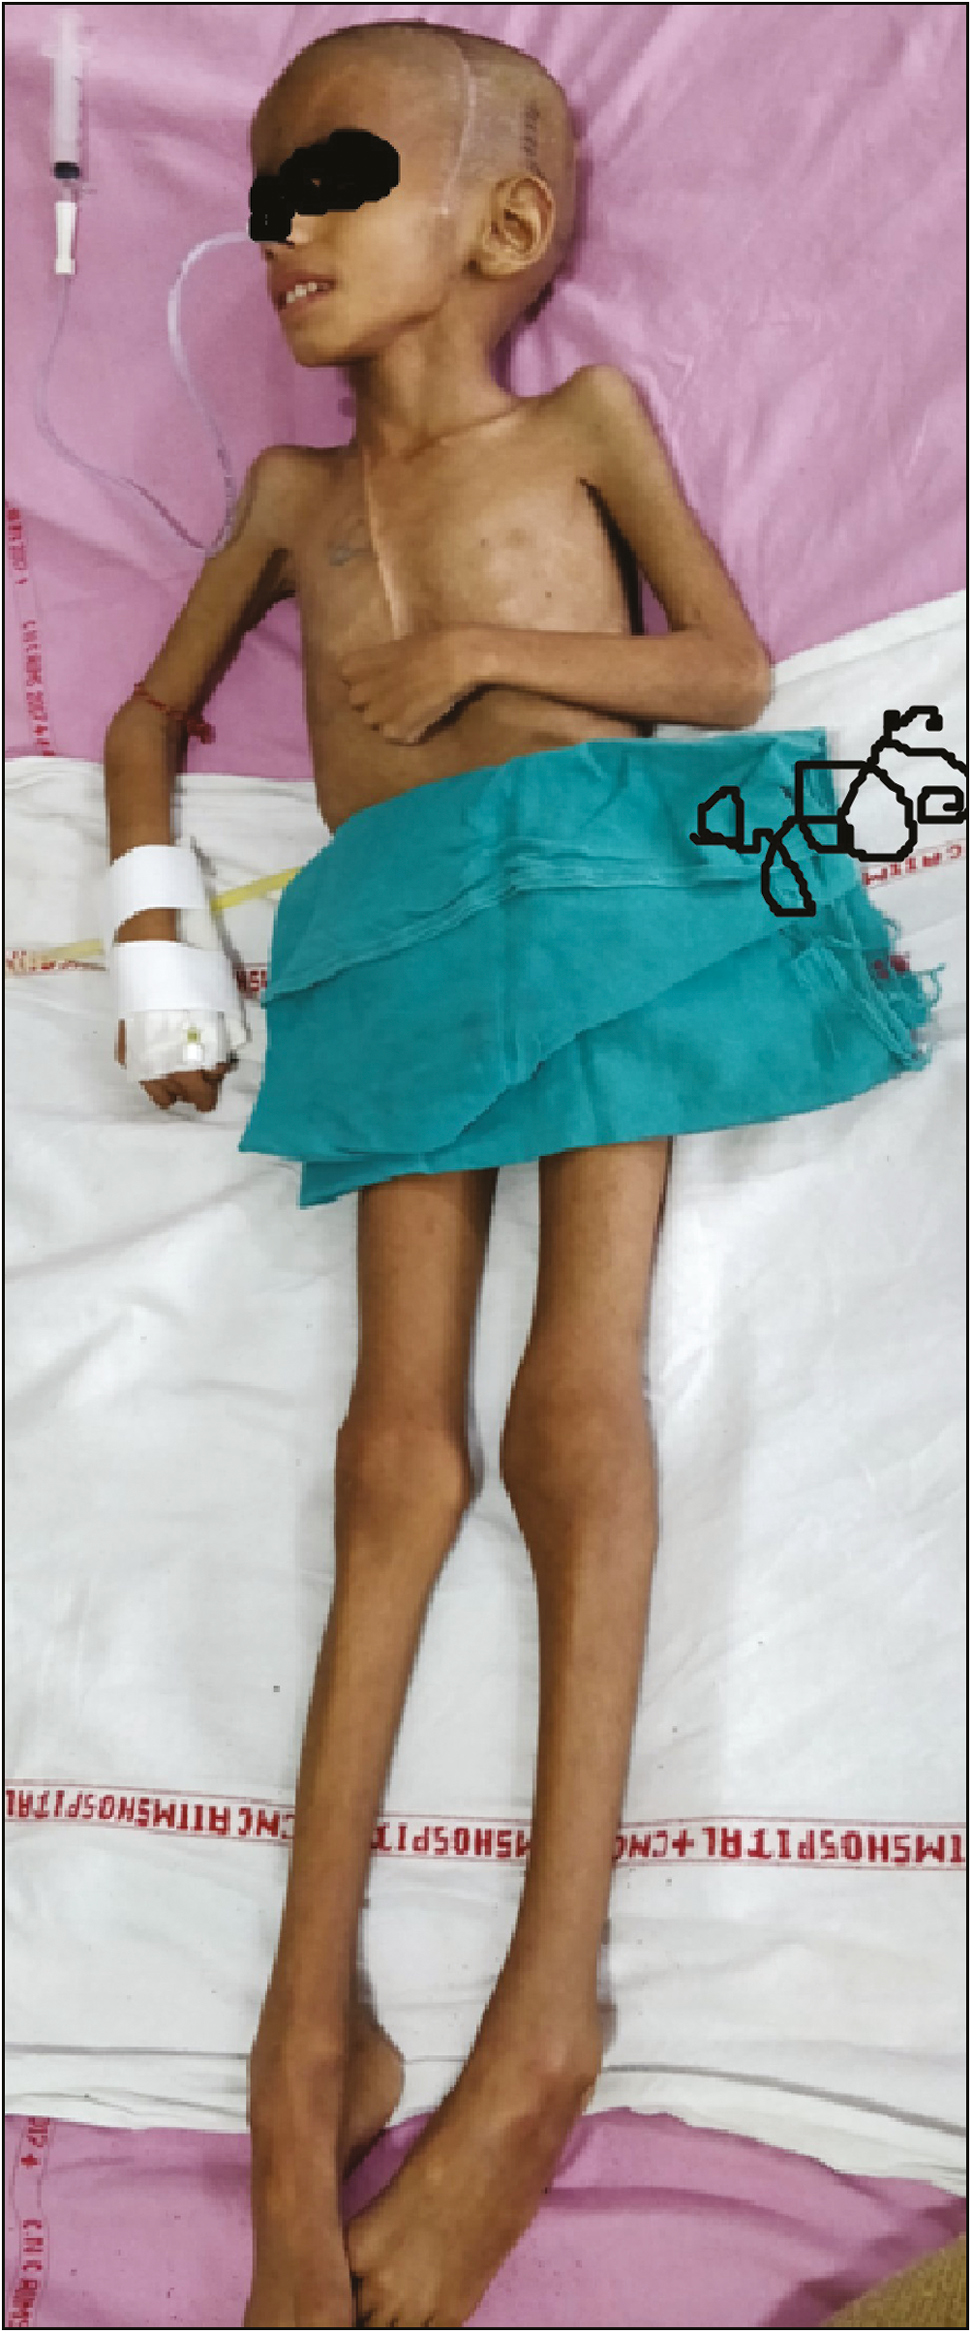 Figure 1: Clinical photograph showing grossly emaciated body but preserved height